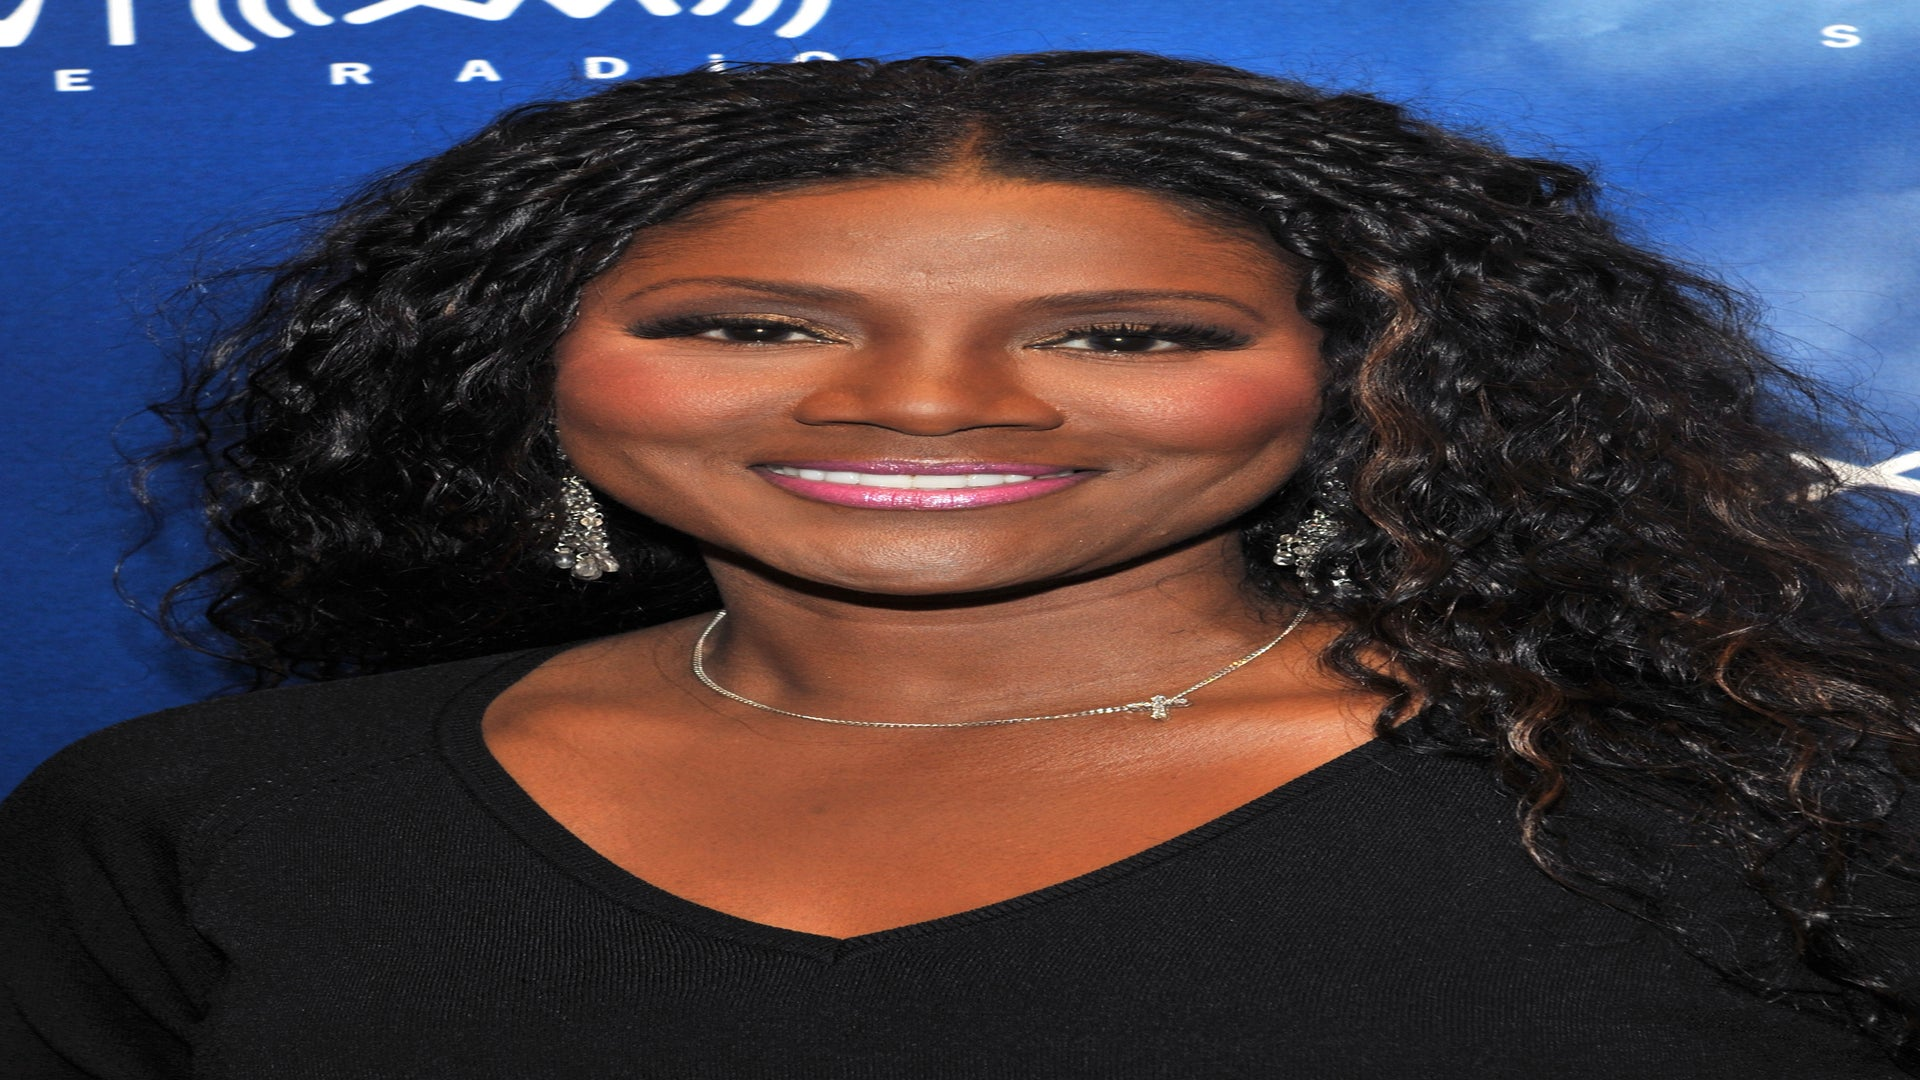 Dr. Juanita Bynum Arrested